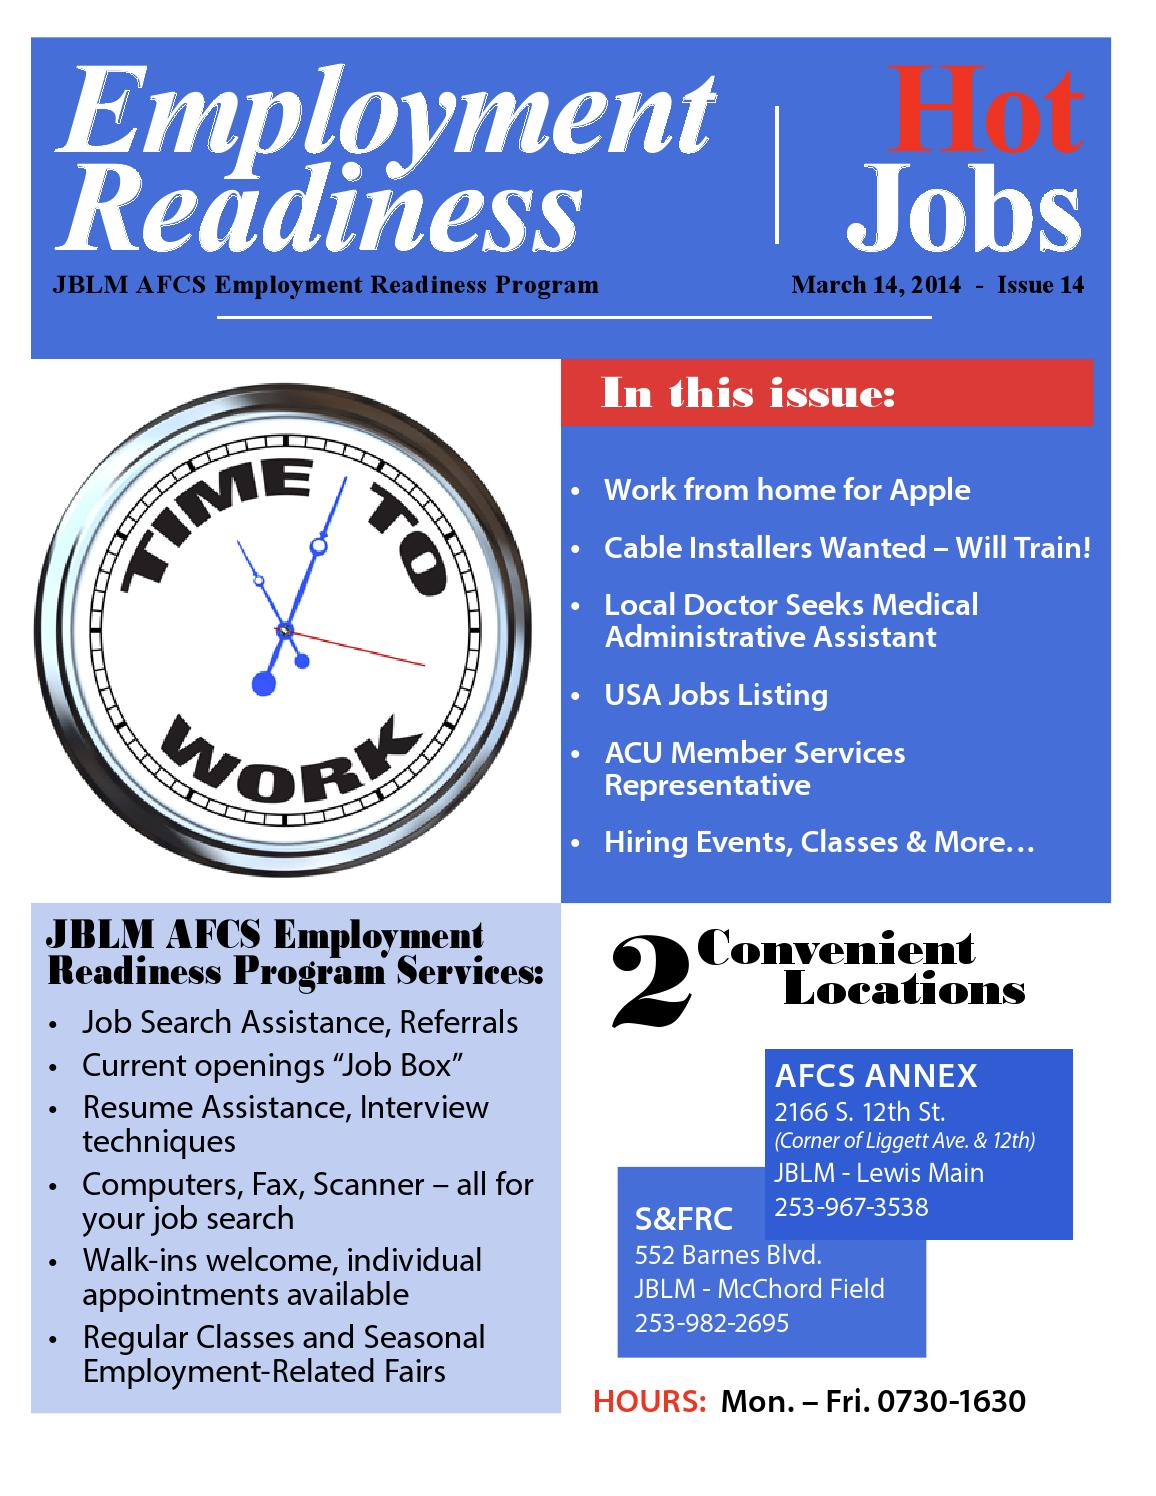 jblm employment readiness hot jobs  issue 14  mar 2014  by